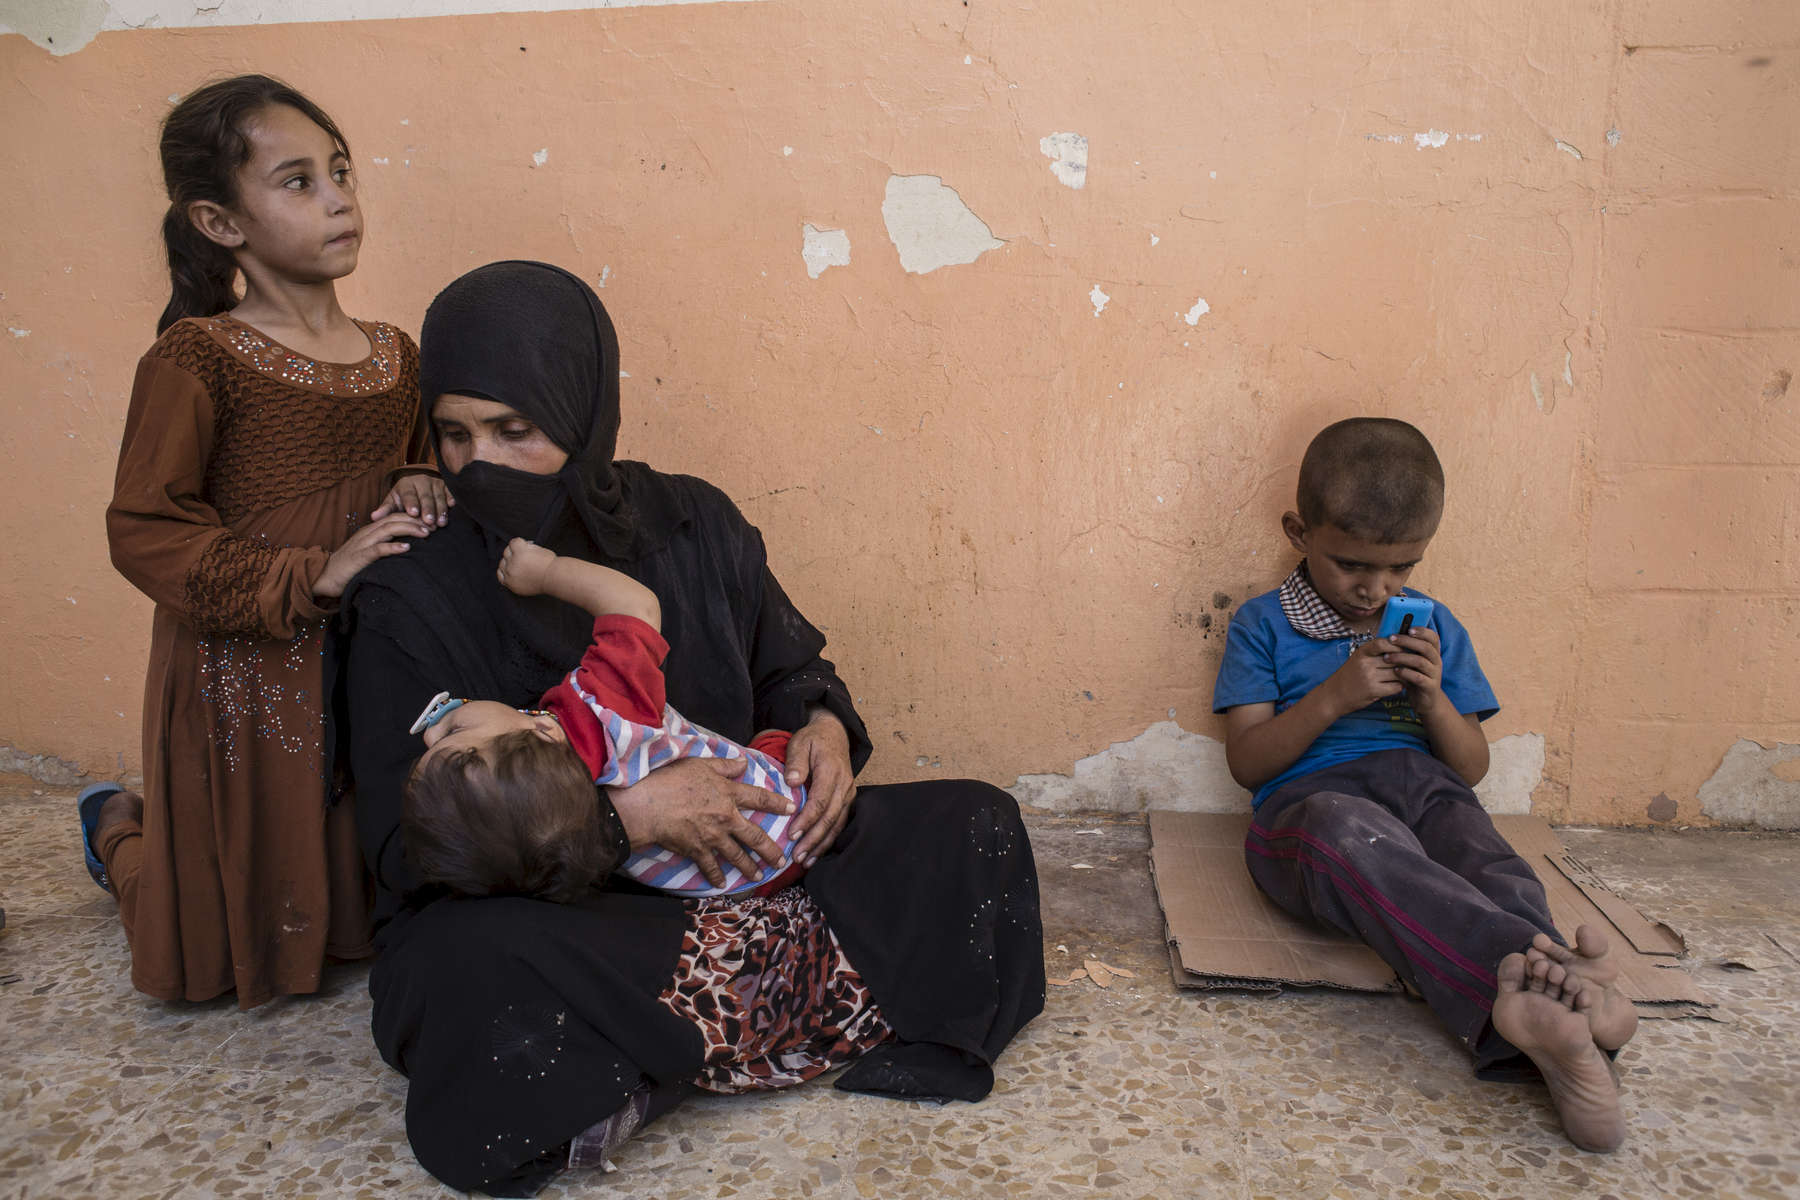 02/09/2016 -- Haji Ali Village, Iraq -- Iraqi women and children at a temporary displacement camp in Haji Ali. Local NGOs have provided basic food items but international NGOs consider the area to dangerous to operate in.